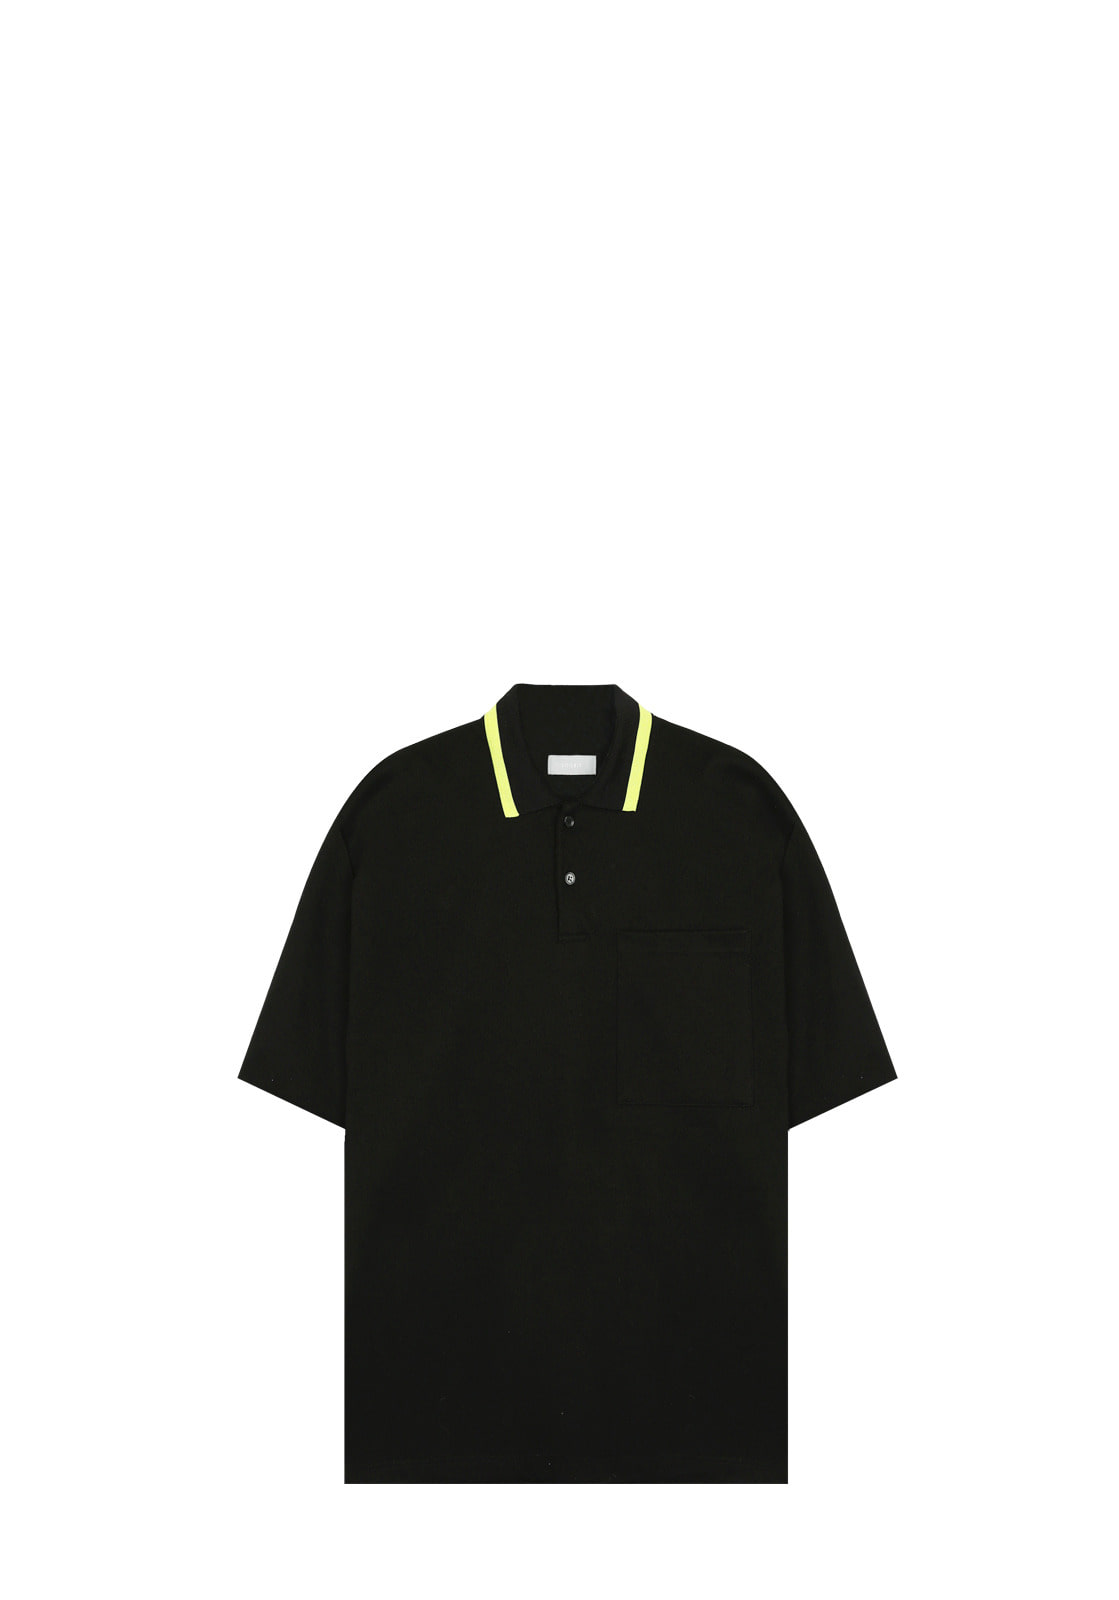 V327 LINE COLOR PIQUE SHIRT  BLACK